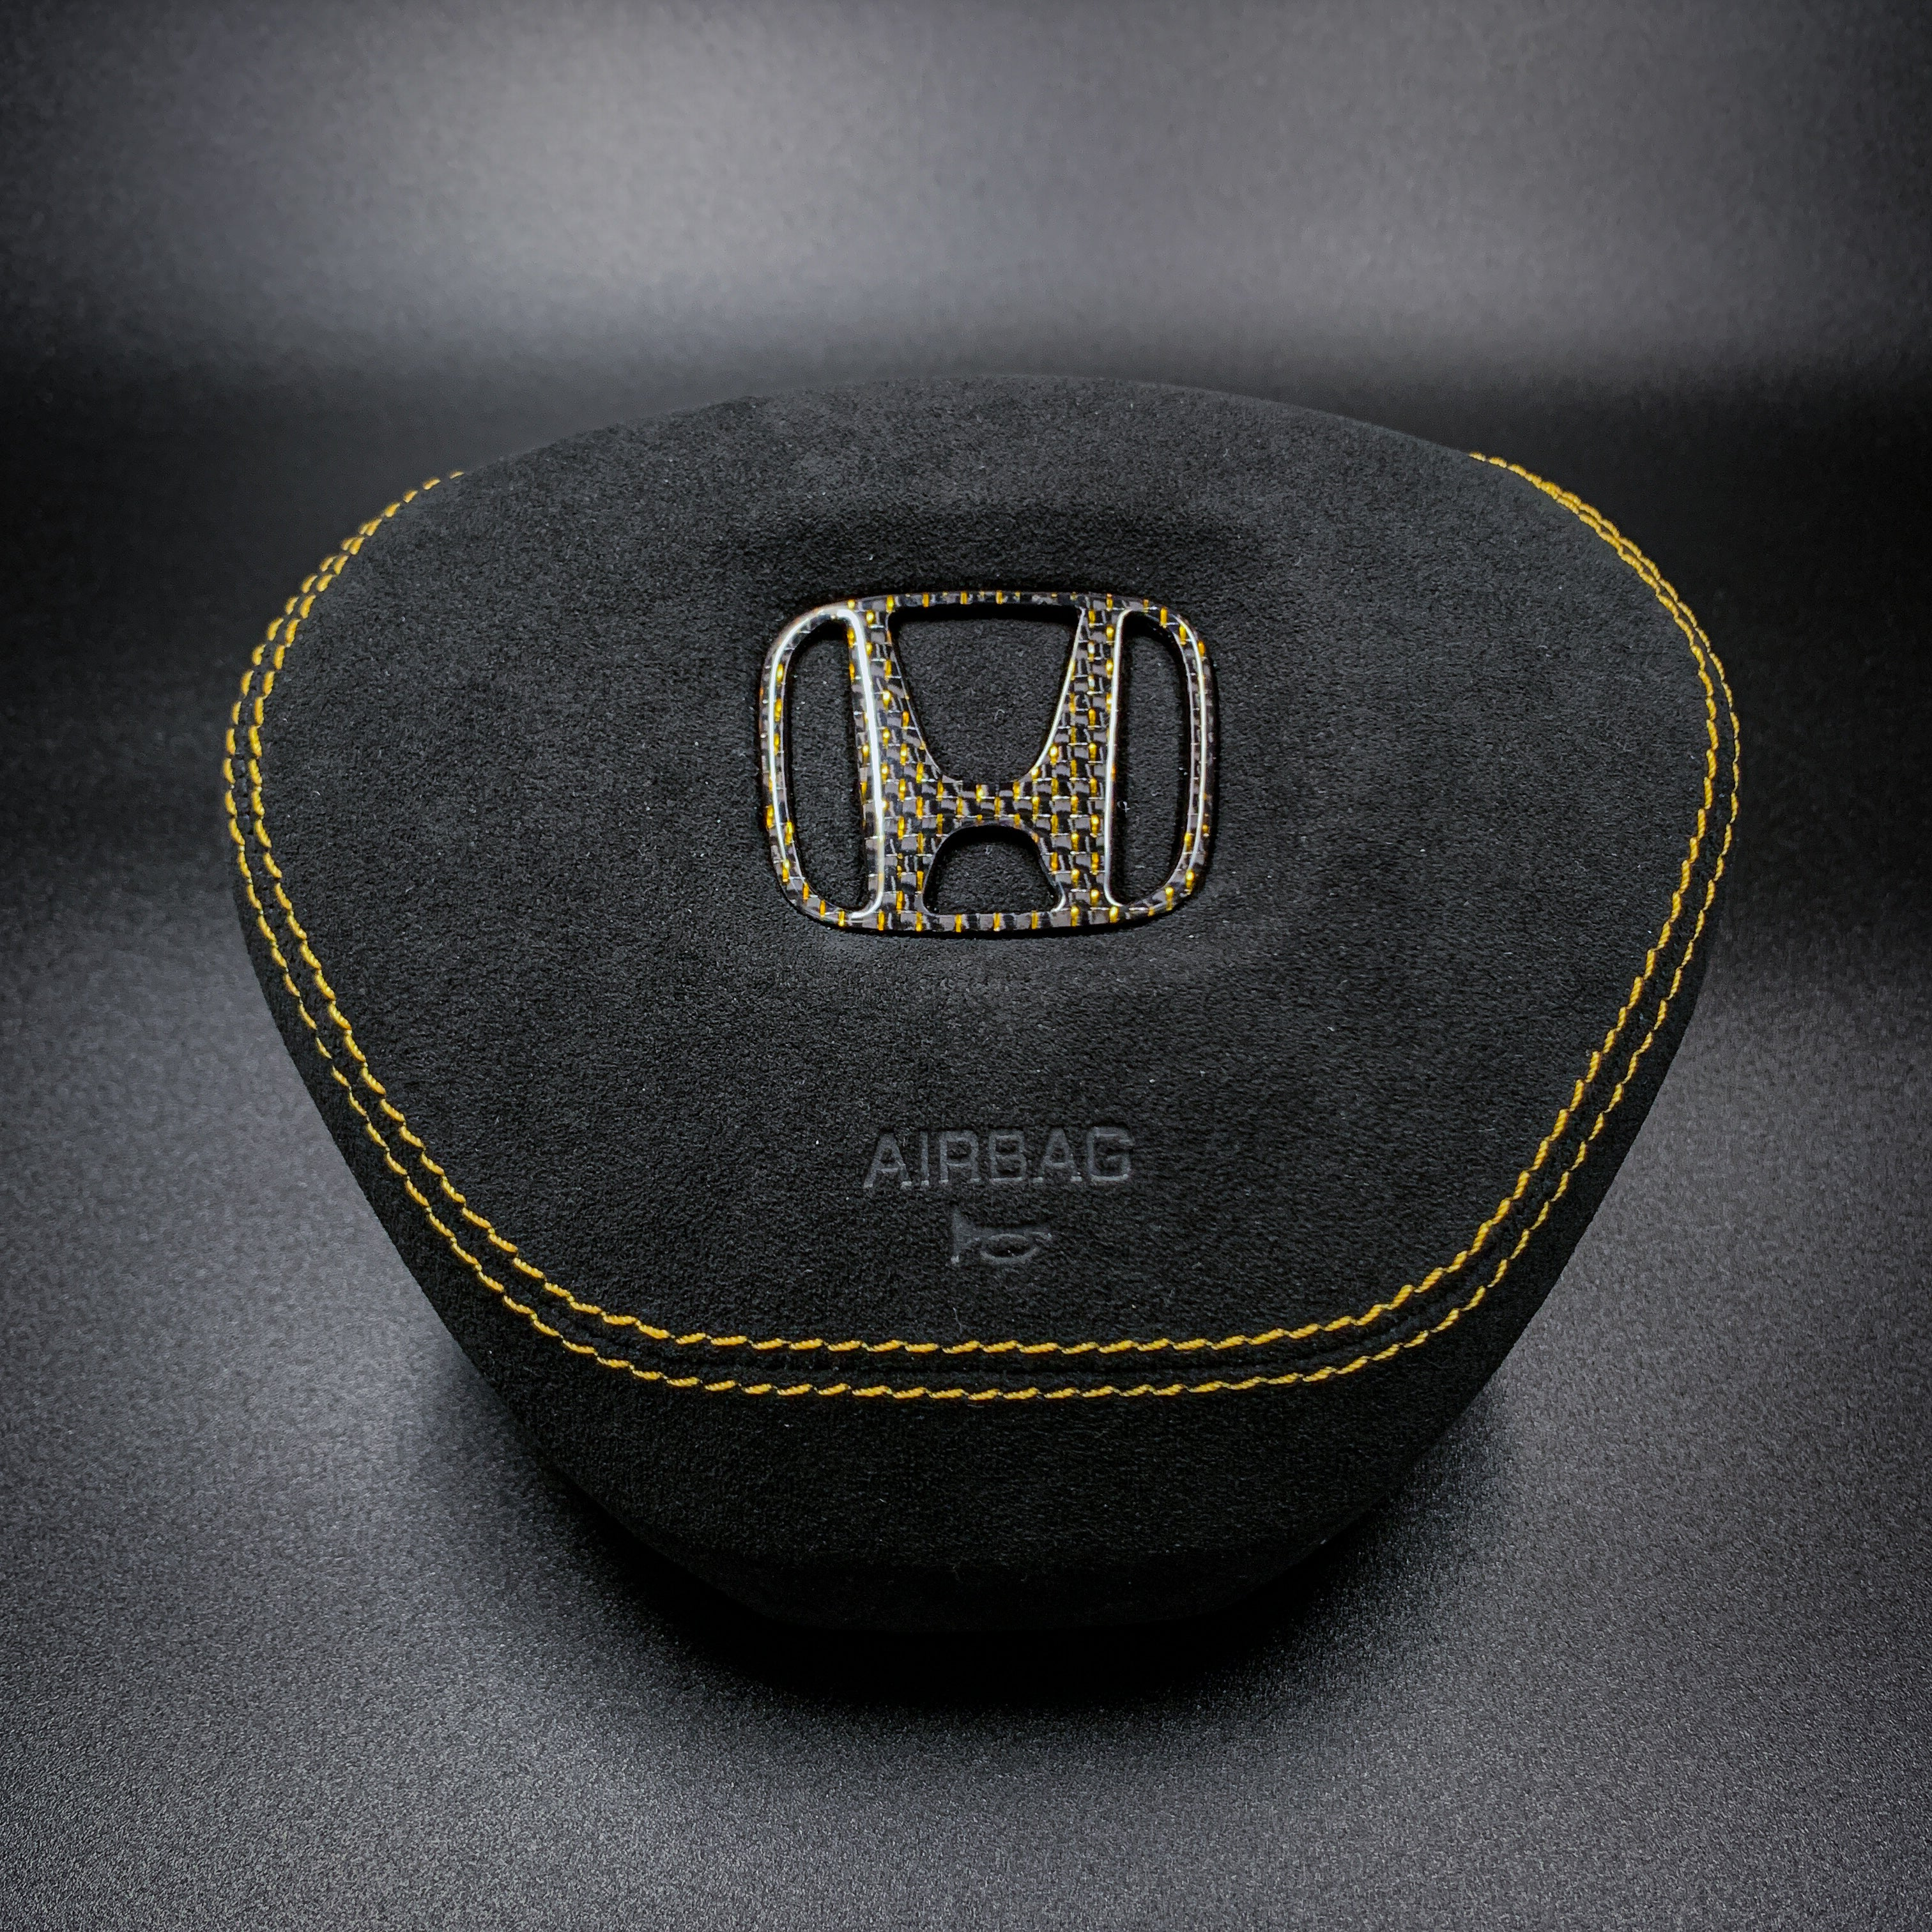 CUSTOM LEATHER AIRBAG COVER